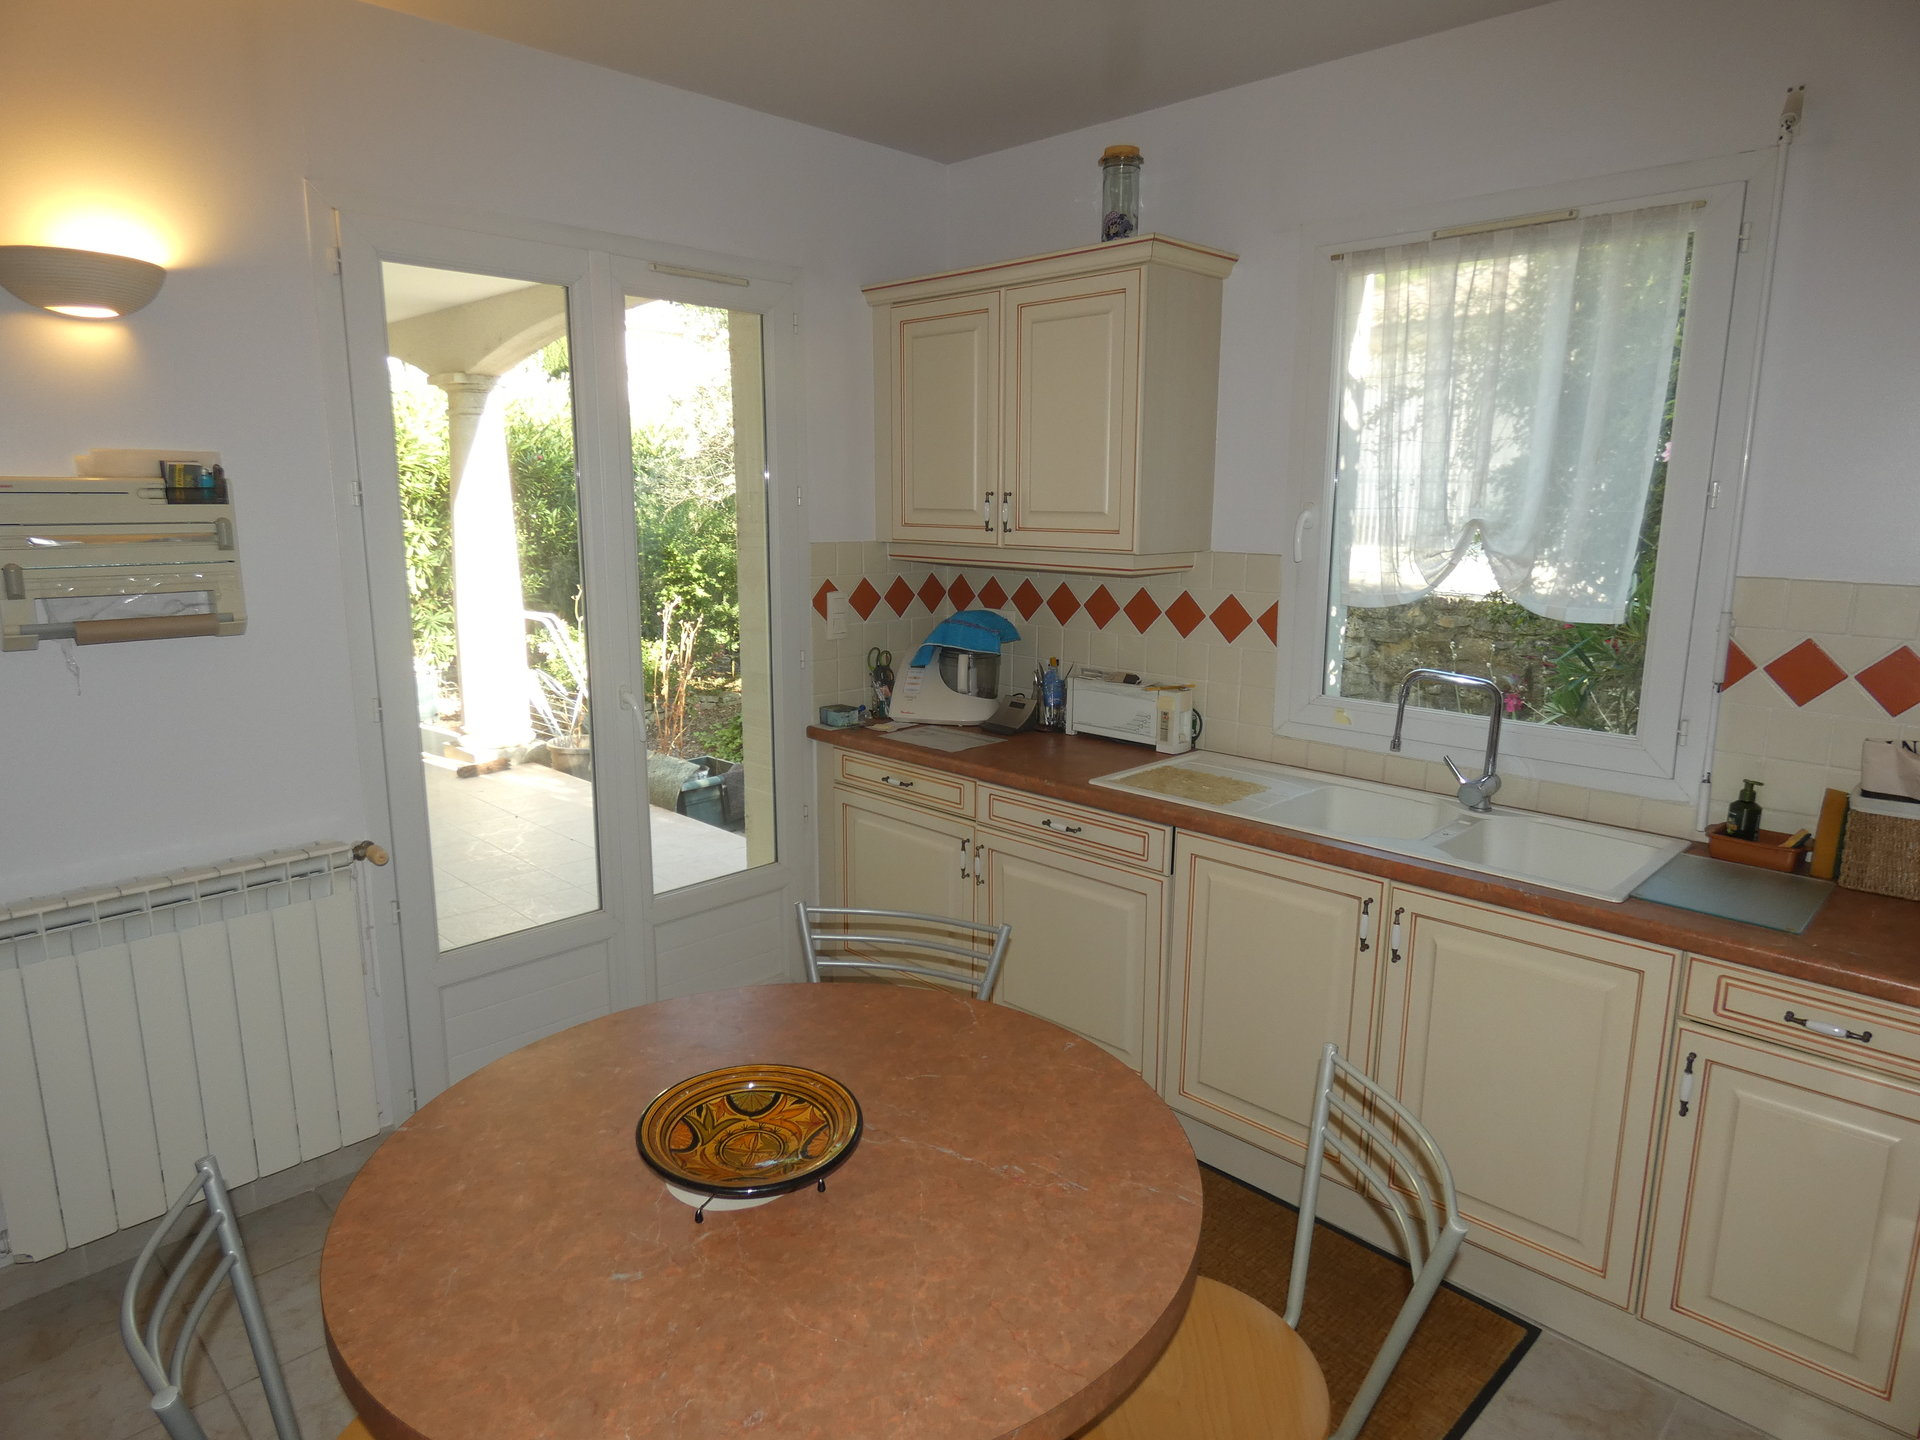 Sale Apartment - Bagnols-sur-Cèze